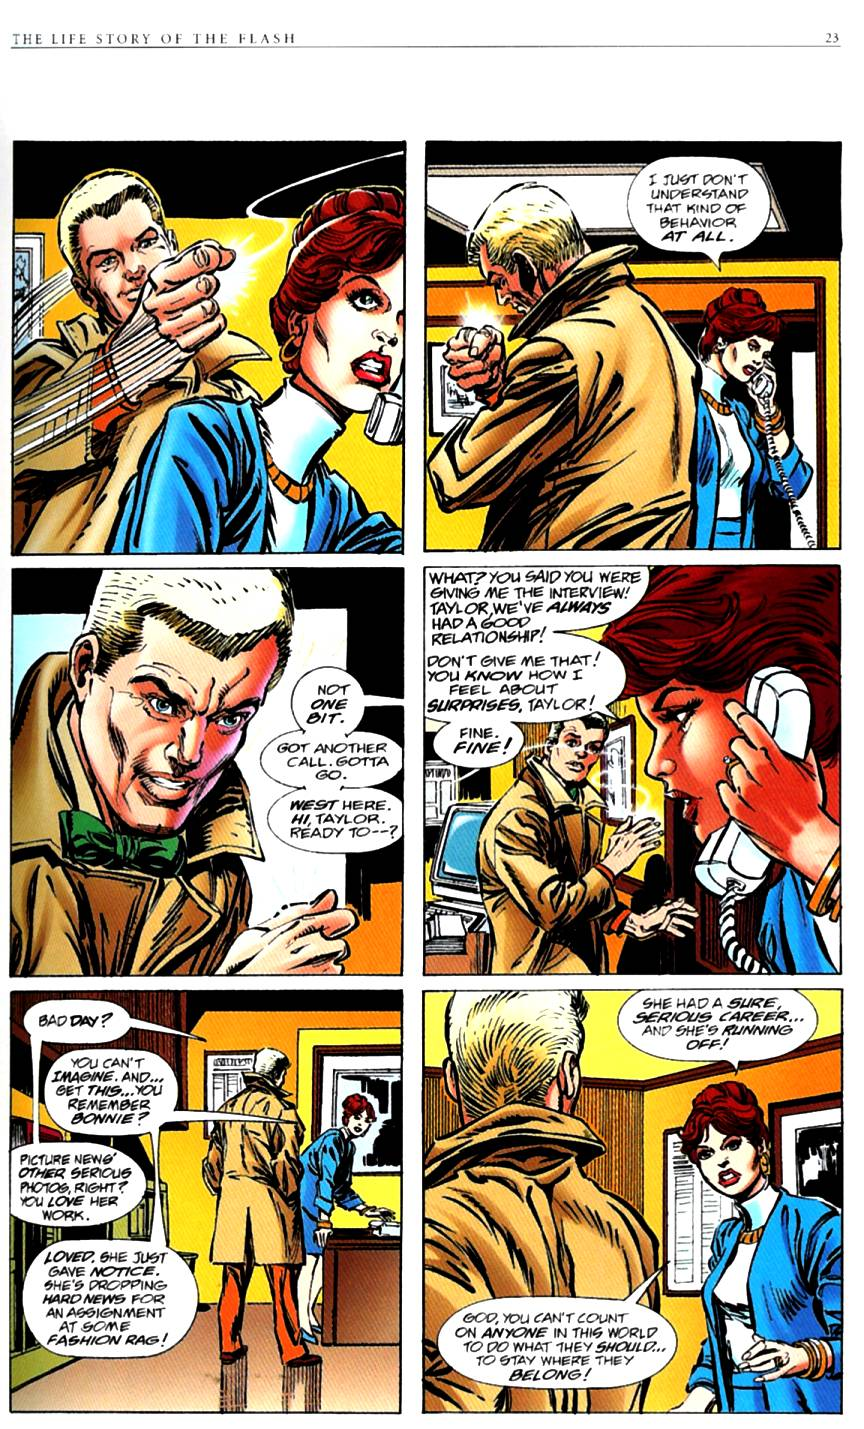 Read online The Life Story of the Flash comic -  Issue # Full - 25